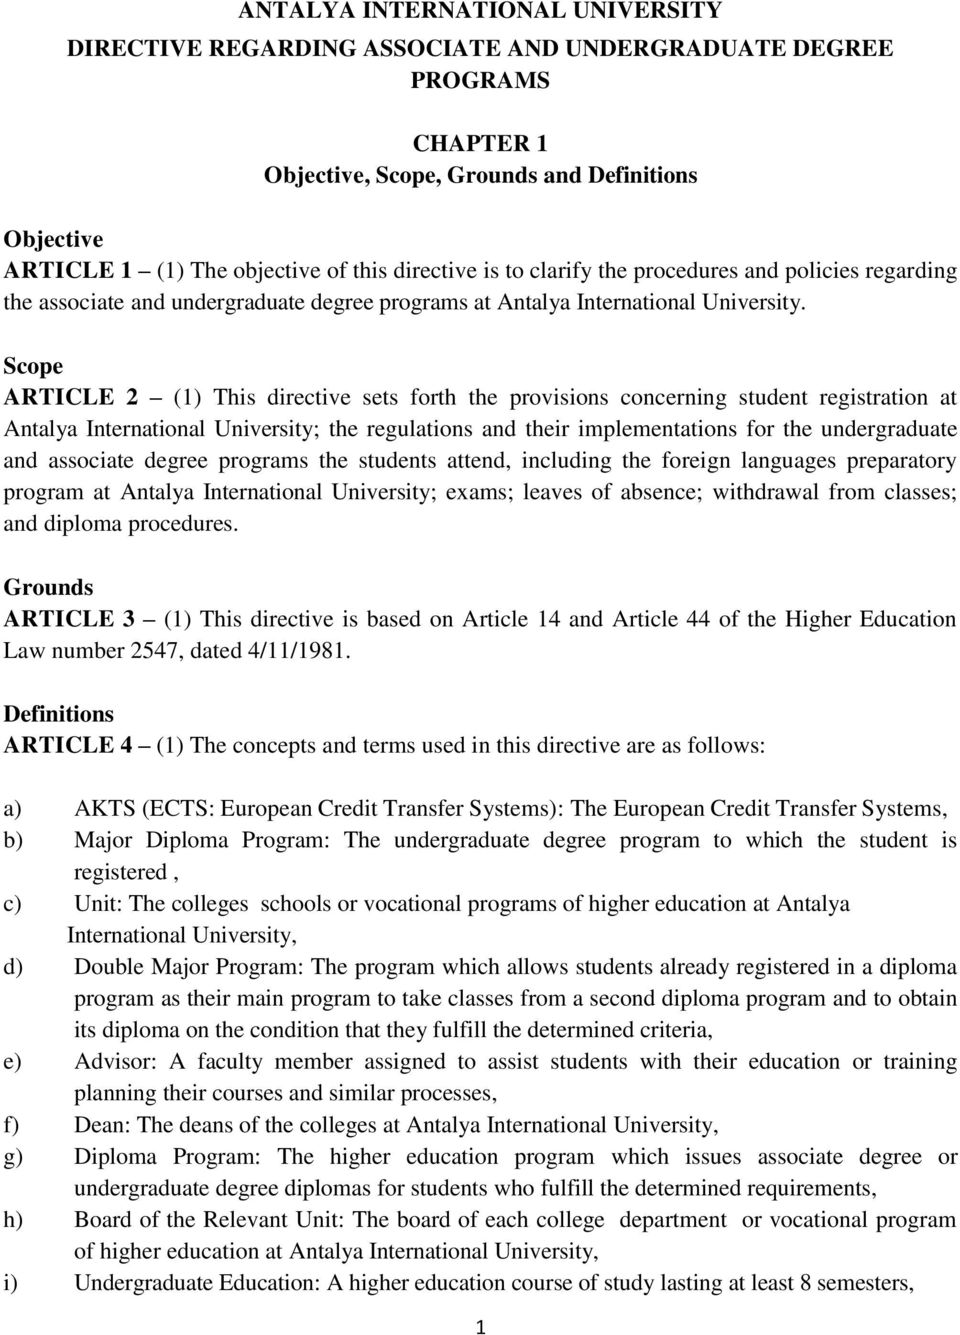 Scope ARTICLE 2 (1) This directive sets forth the provisions concerning student registration at Antalya International University; the regulations and their implementations for the undergraduate and